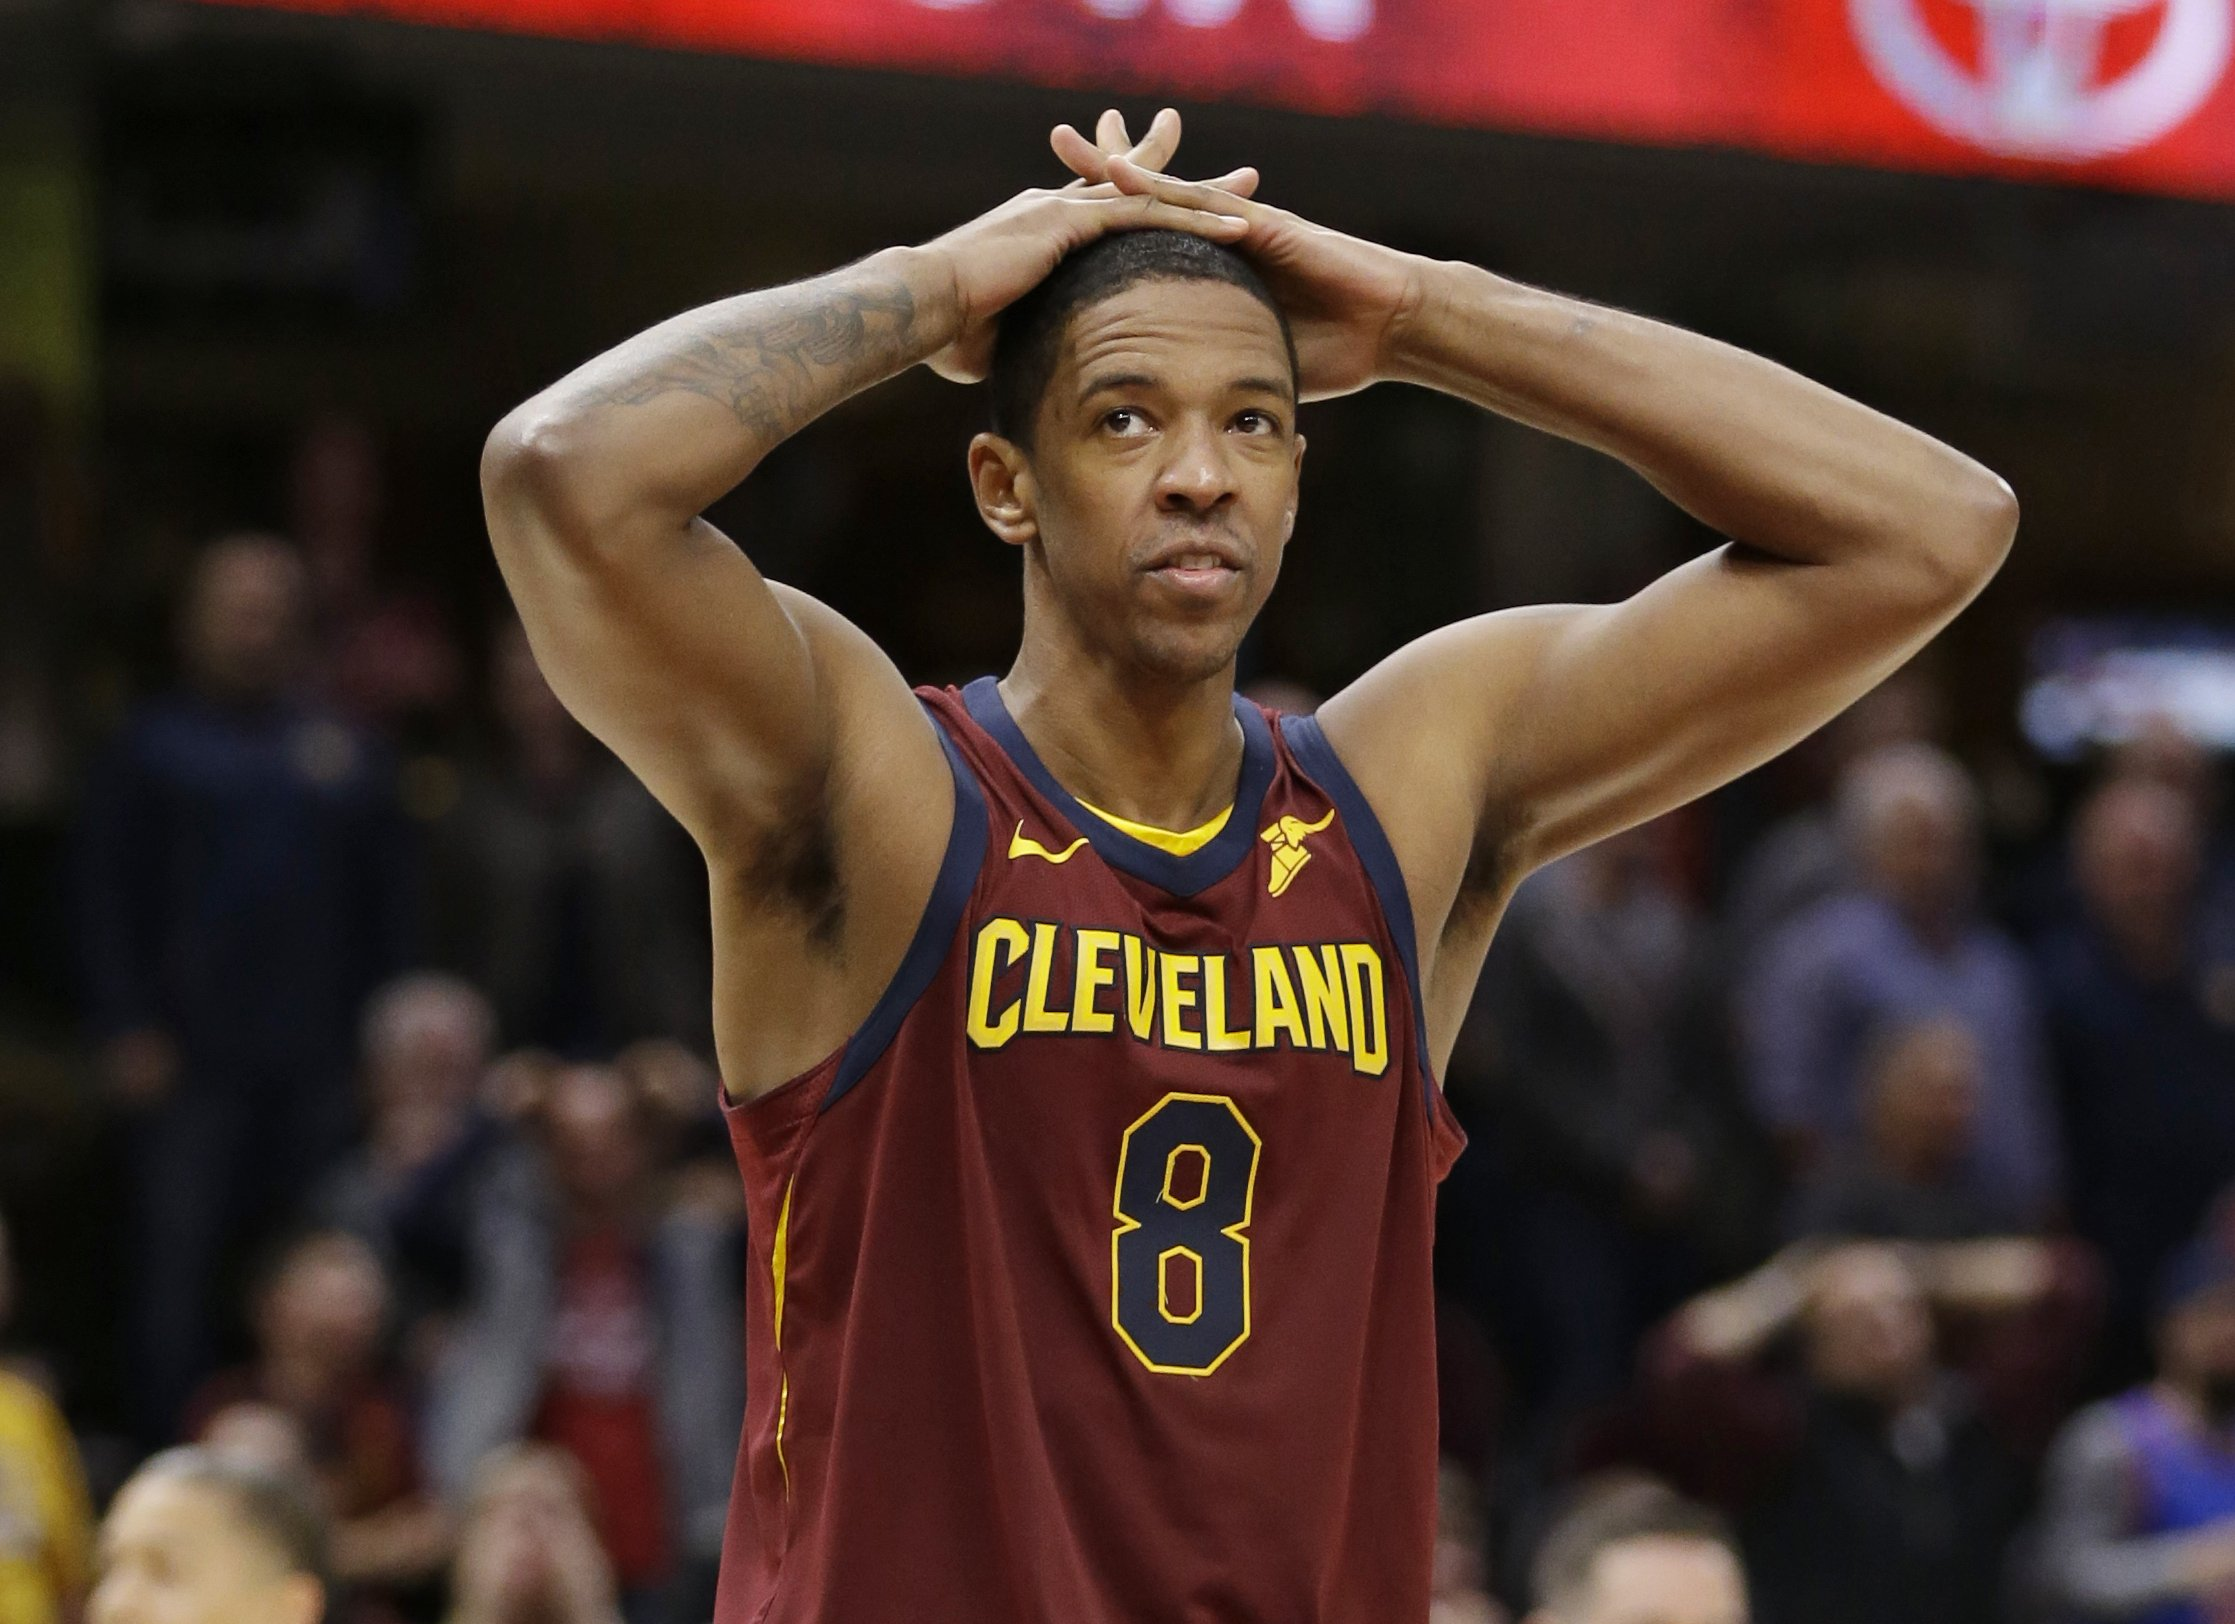 promo code 53933 ccd13 Cavs F Channing Frye to retire at end of season